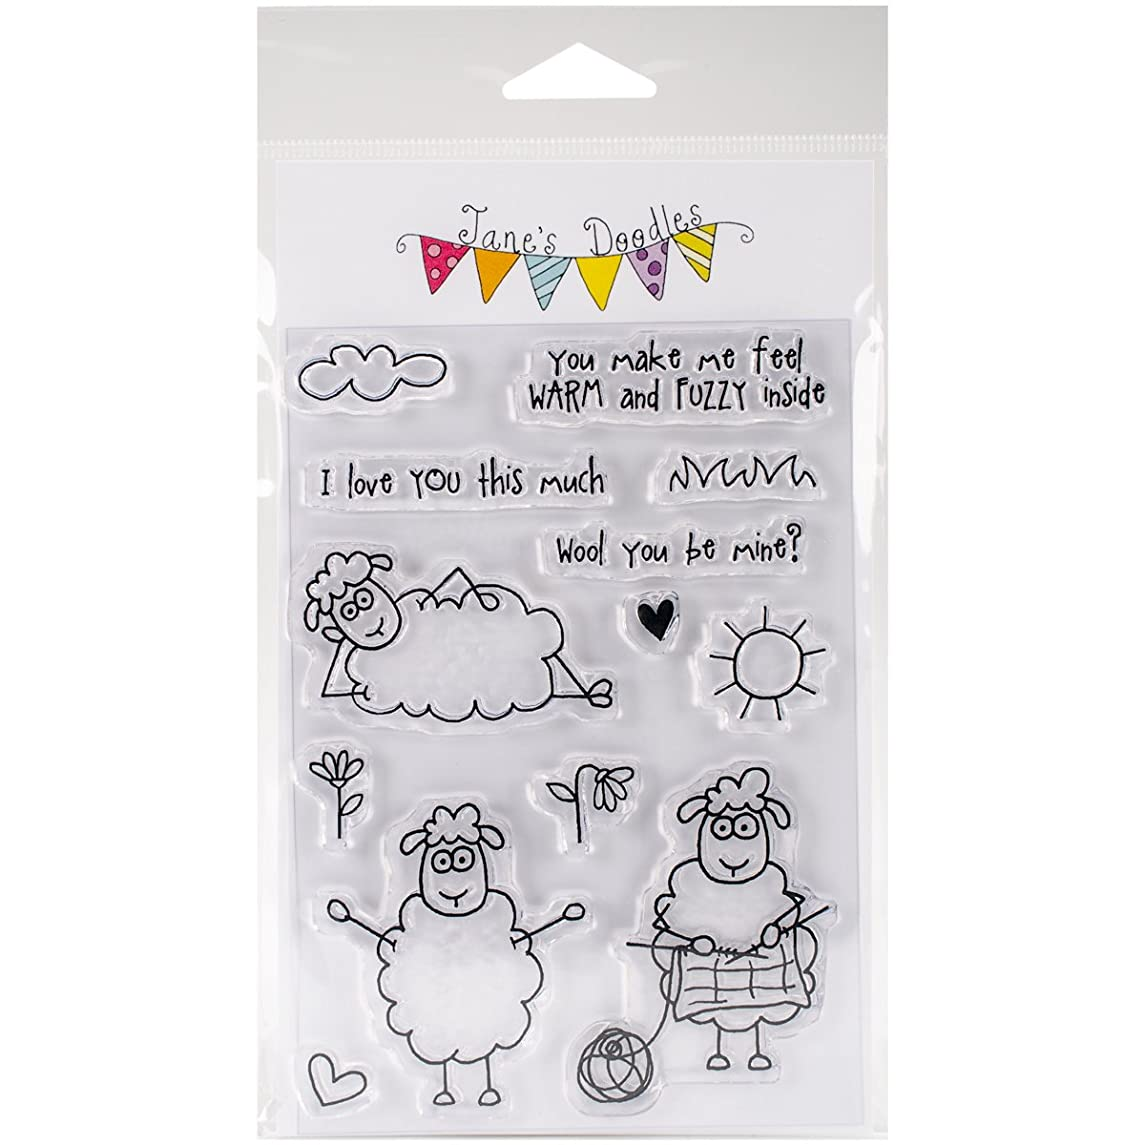 Jane's Doodles 742866 Clear Stamps 4